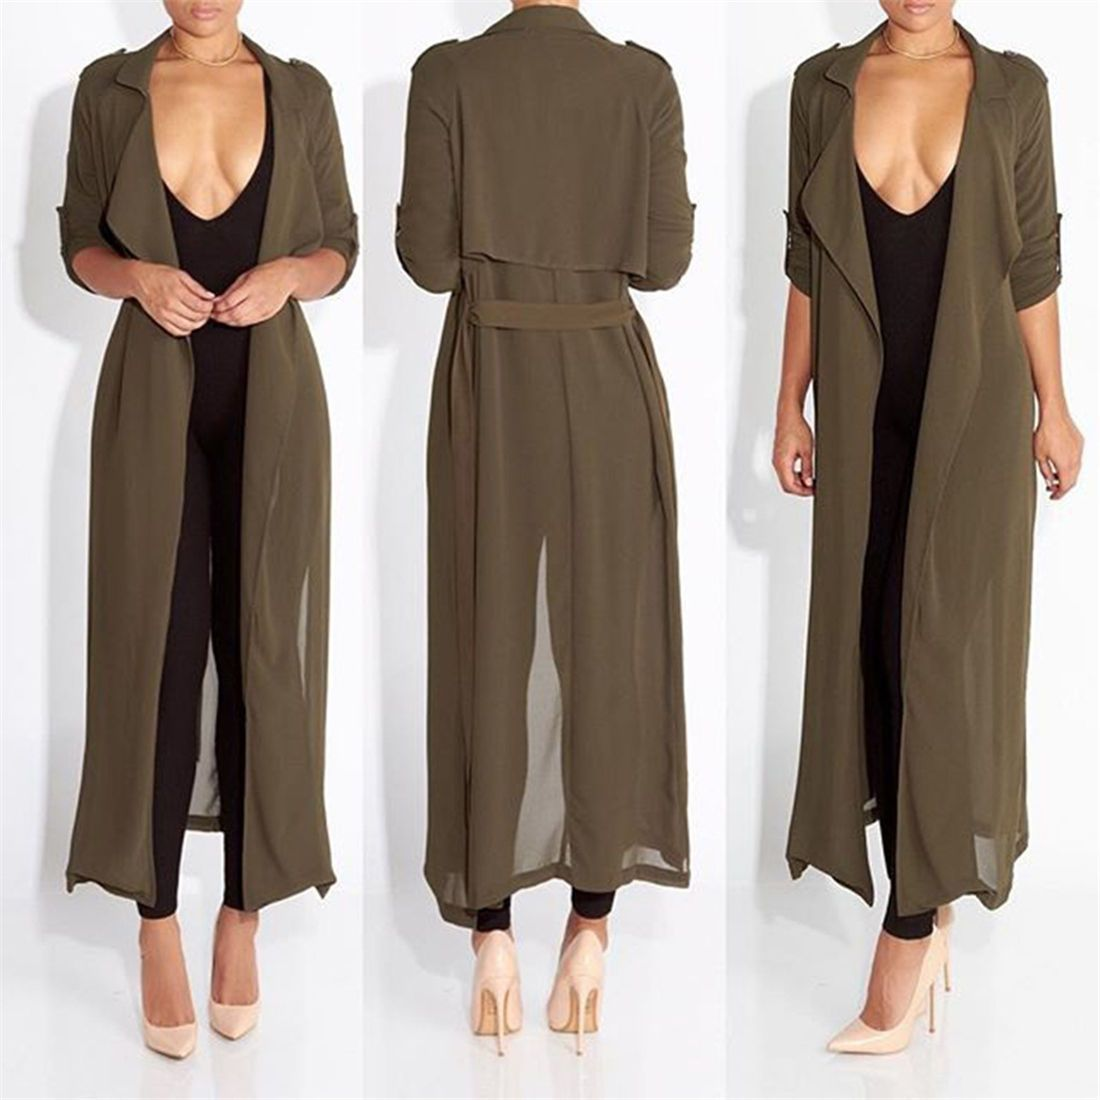 Stylish Women Chiffon Long Sleeve Long Cardigan Outwear Evening ...